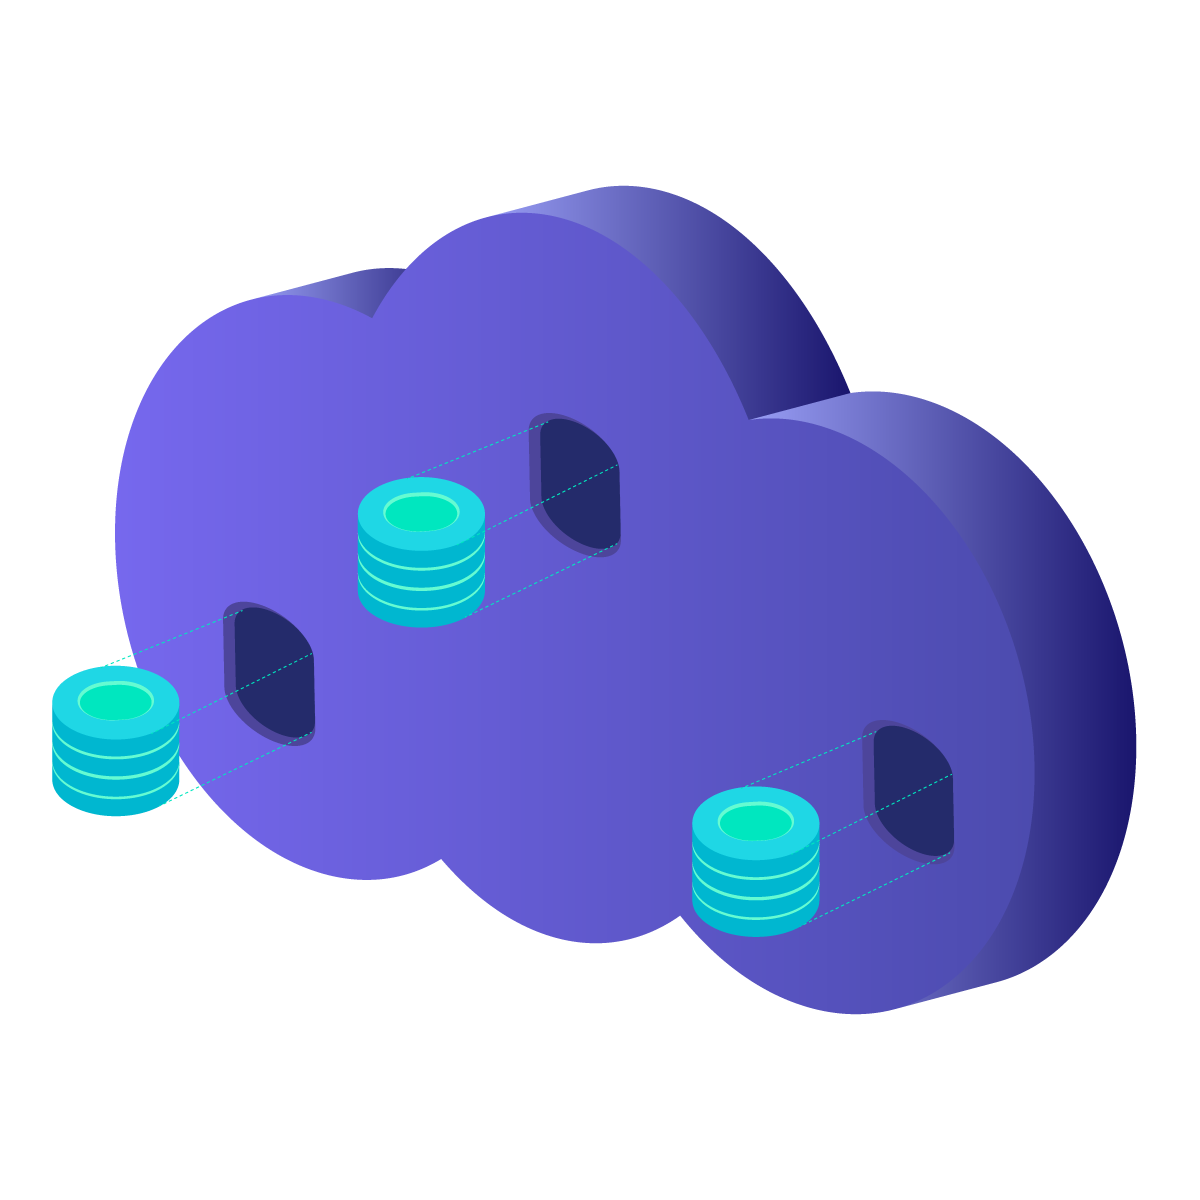 different volumes available in a cloud